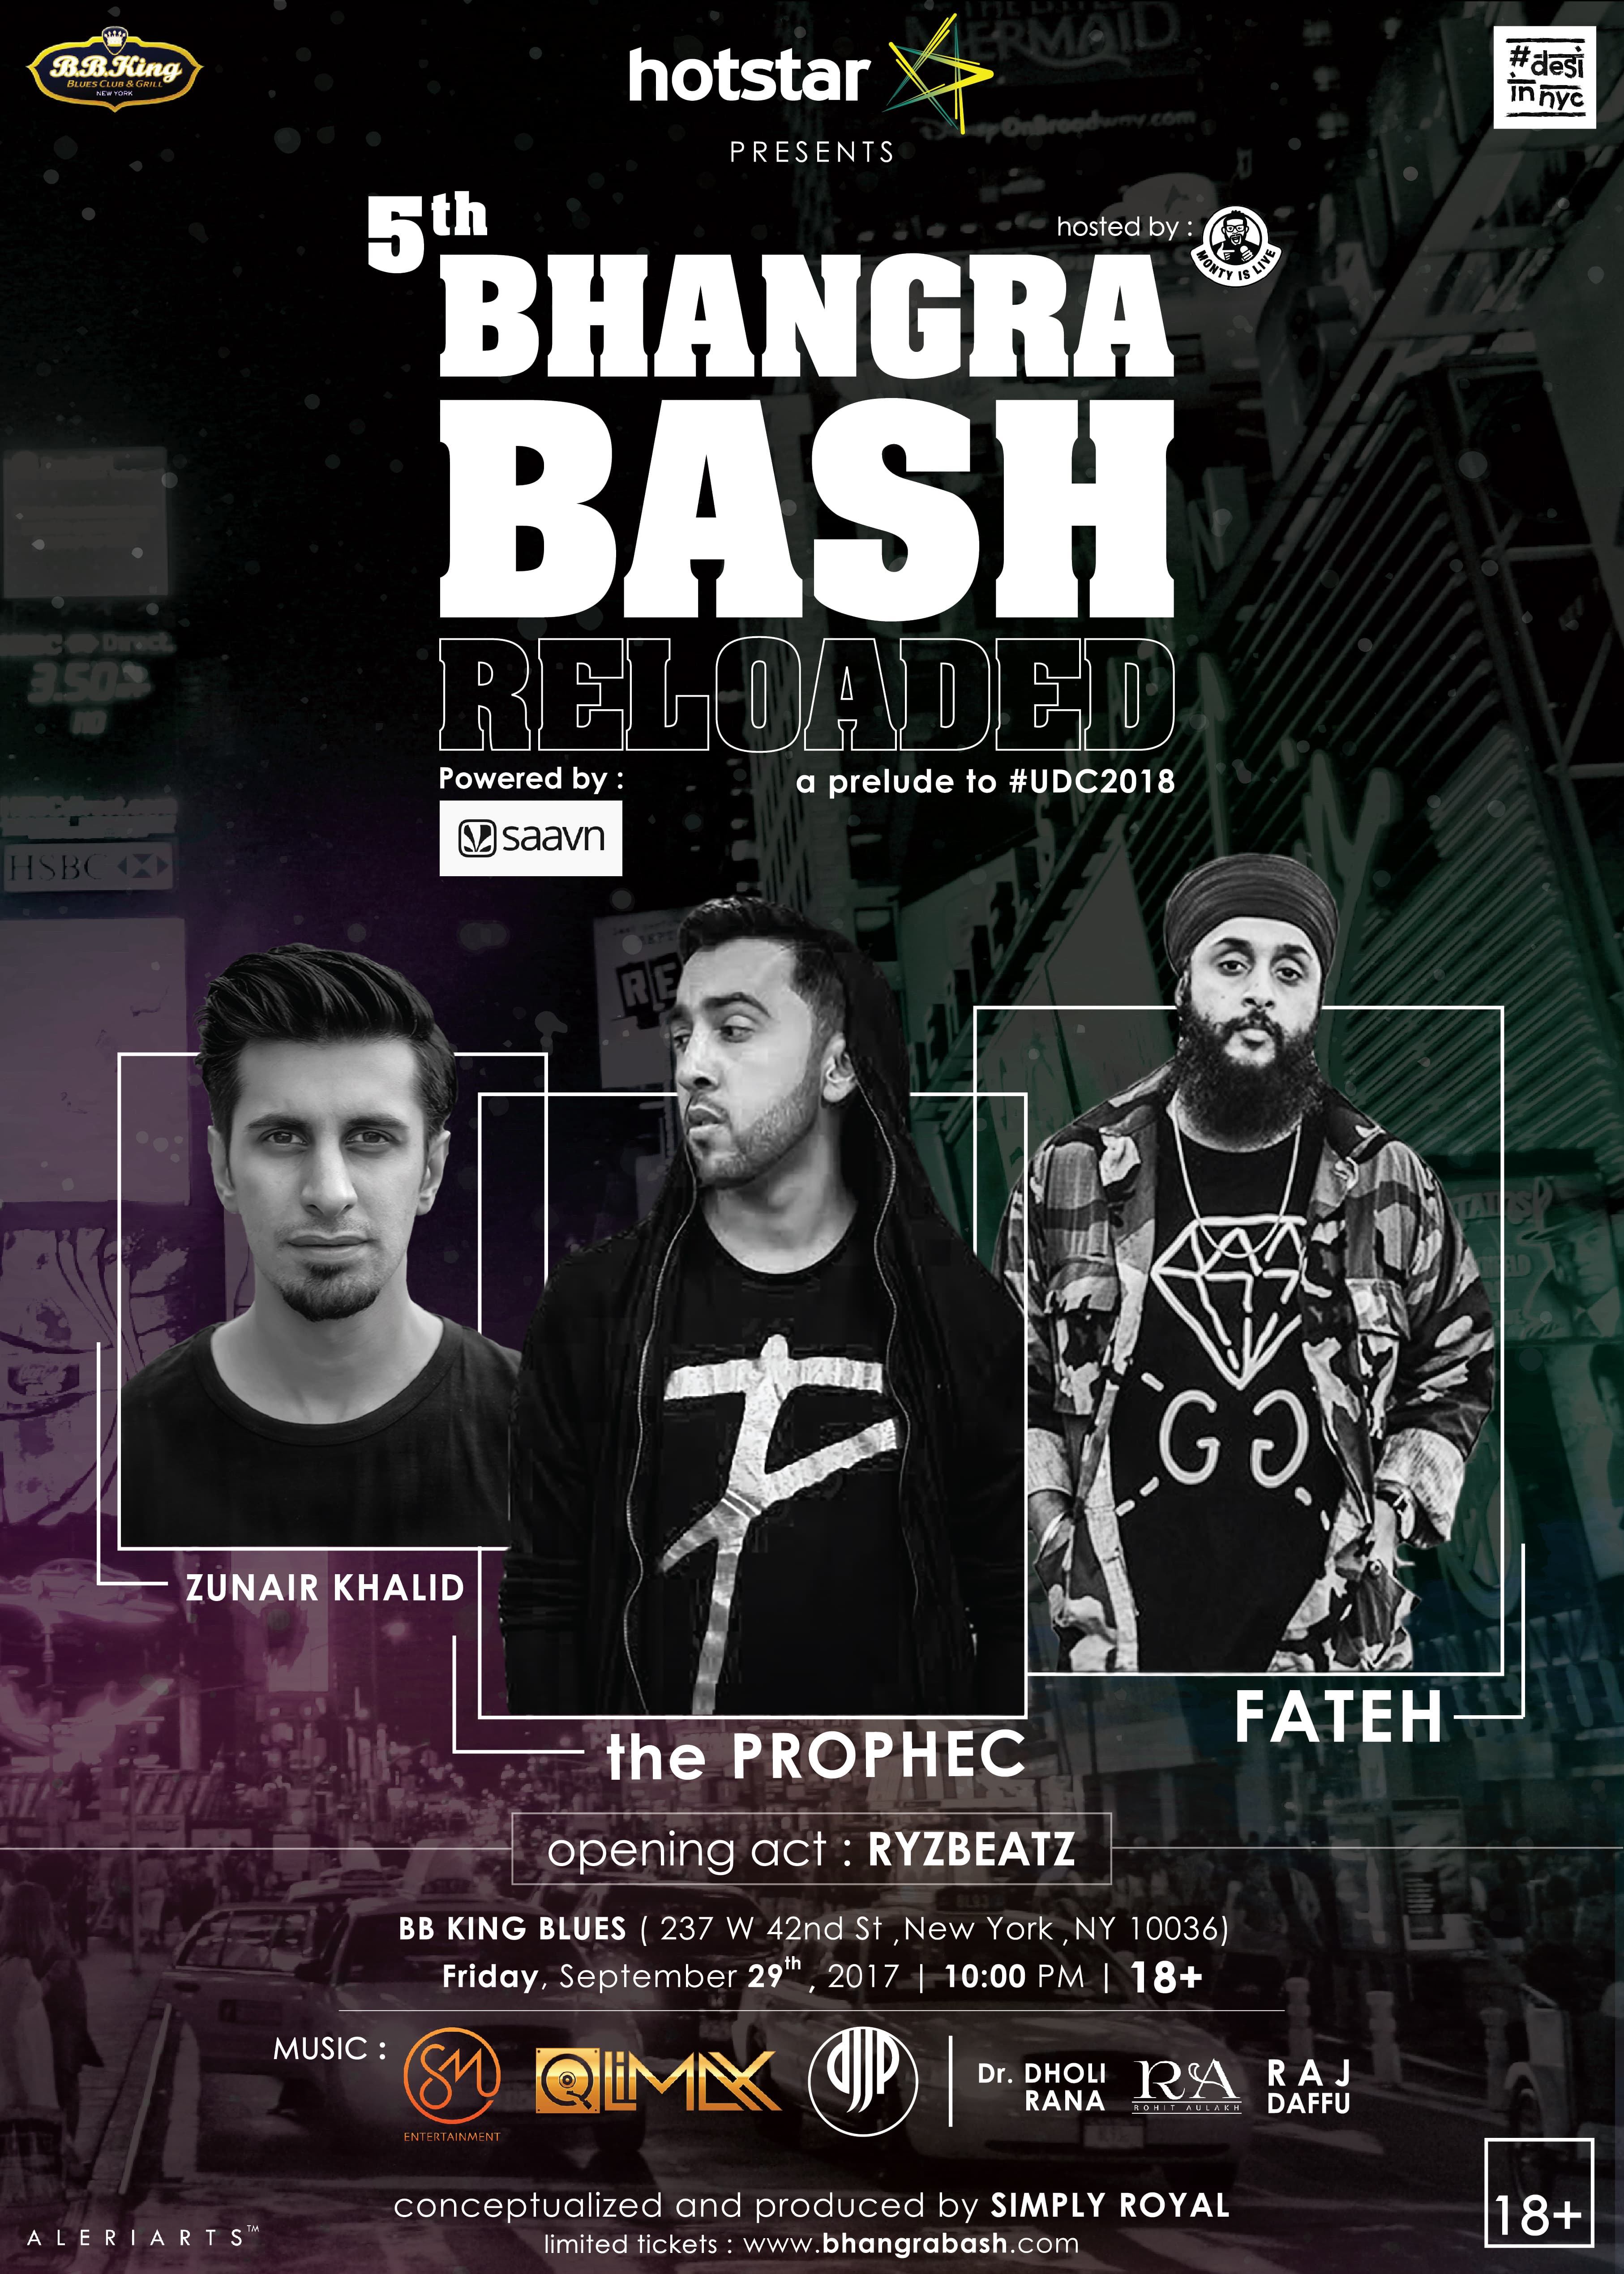 5th Annual BHANGRA BASH - ReLoaded (18+) with The PropheC x Fateh x Zunair